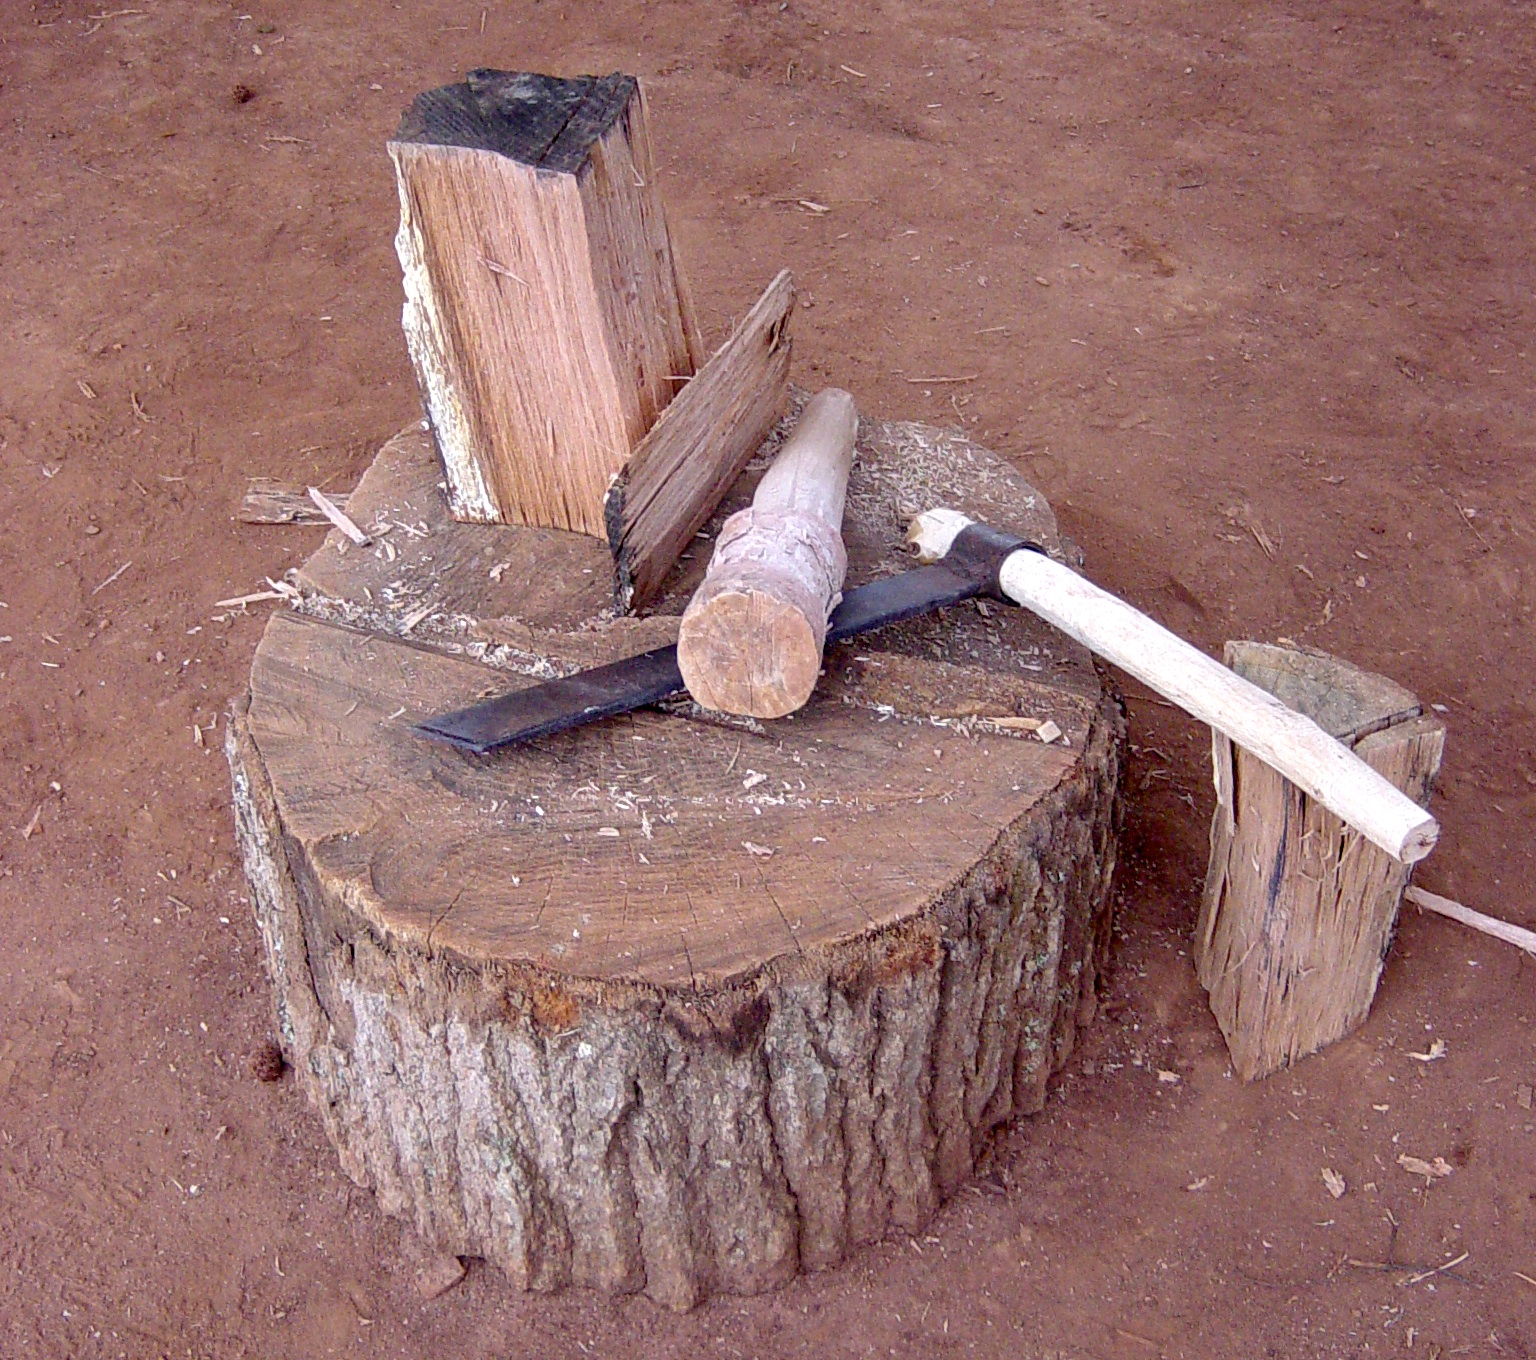 """In pioneer days, the froe was used to split off pieces from a log and the maul was used to drive the froe into the wood. The froe had a couple of dozen other names as well, including """"riving ax."""" Depending on how large and long the log was, everything from withes to shakes and shingles were made."""